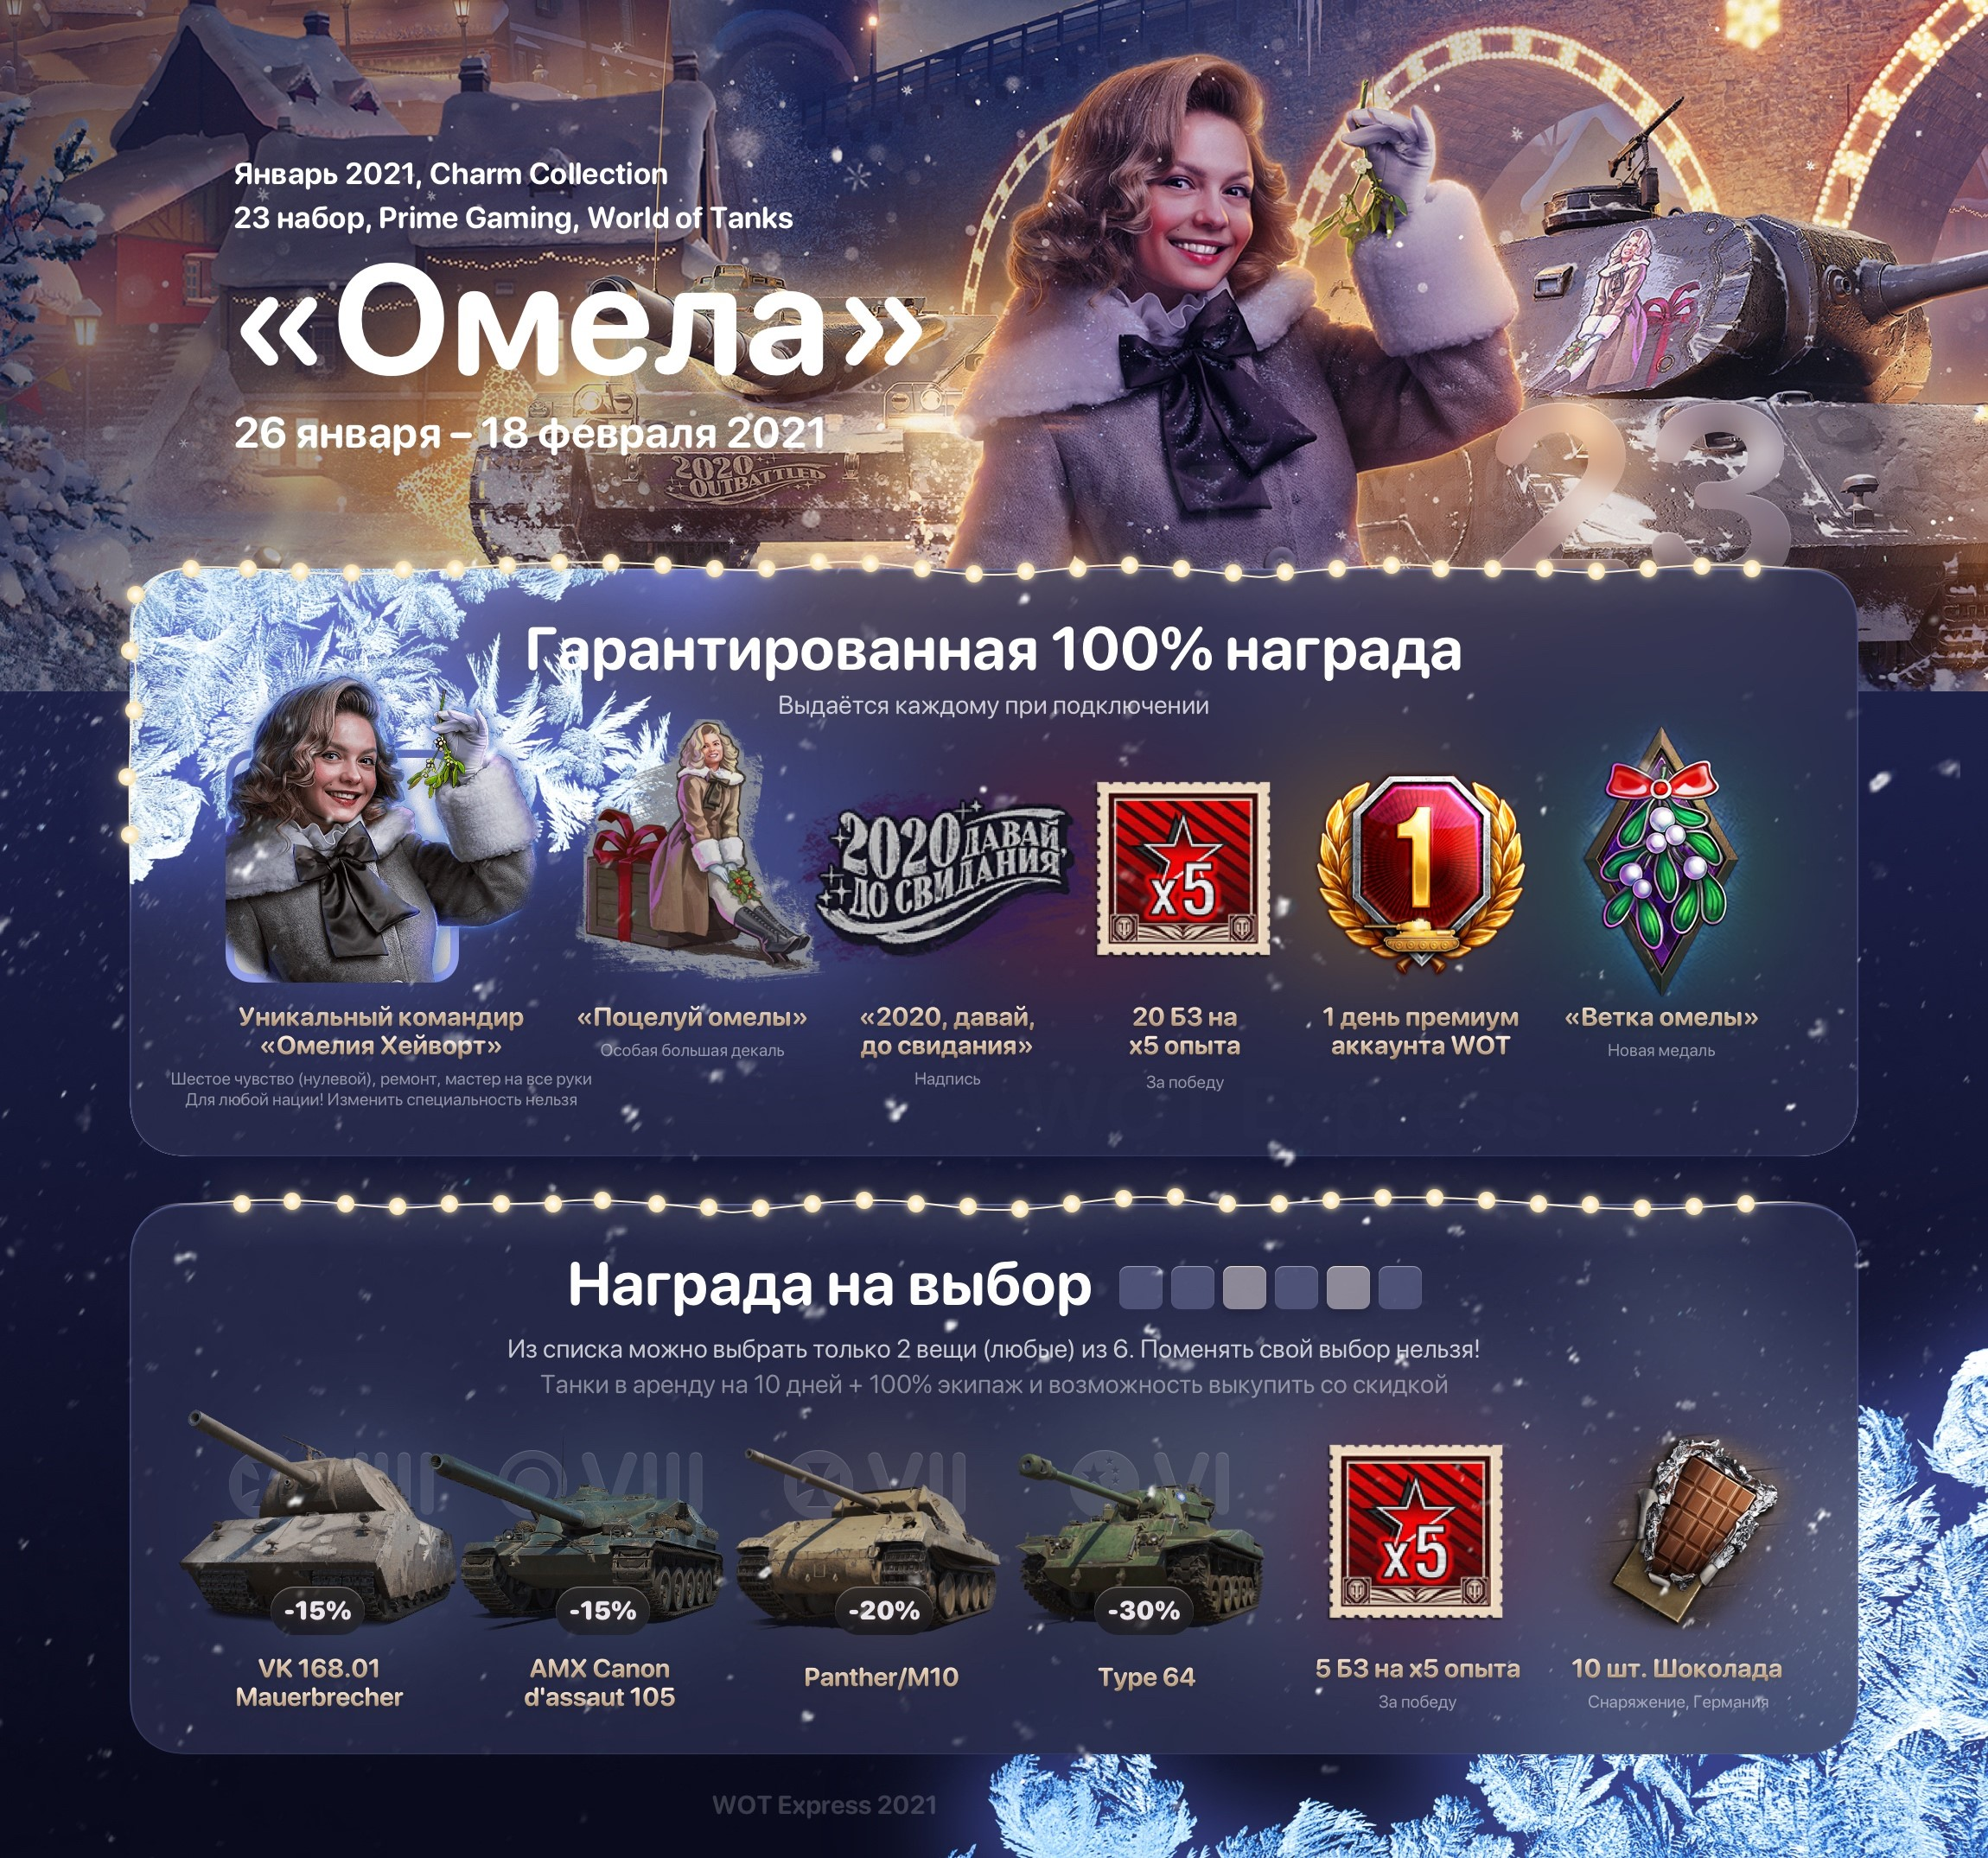 World of Tanks Twitch Prime Charm Collection